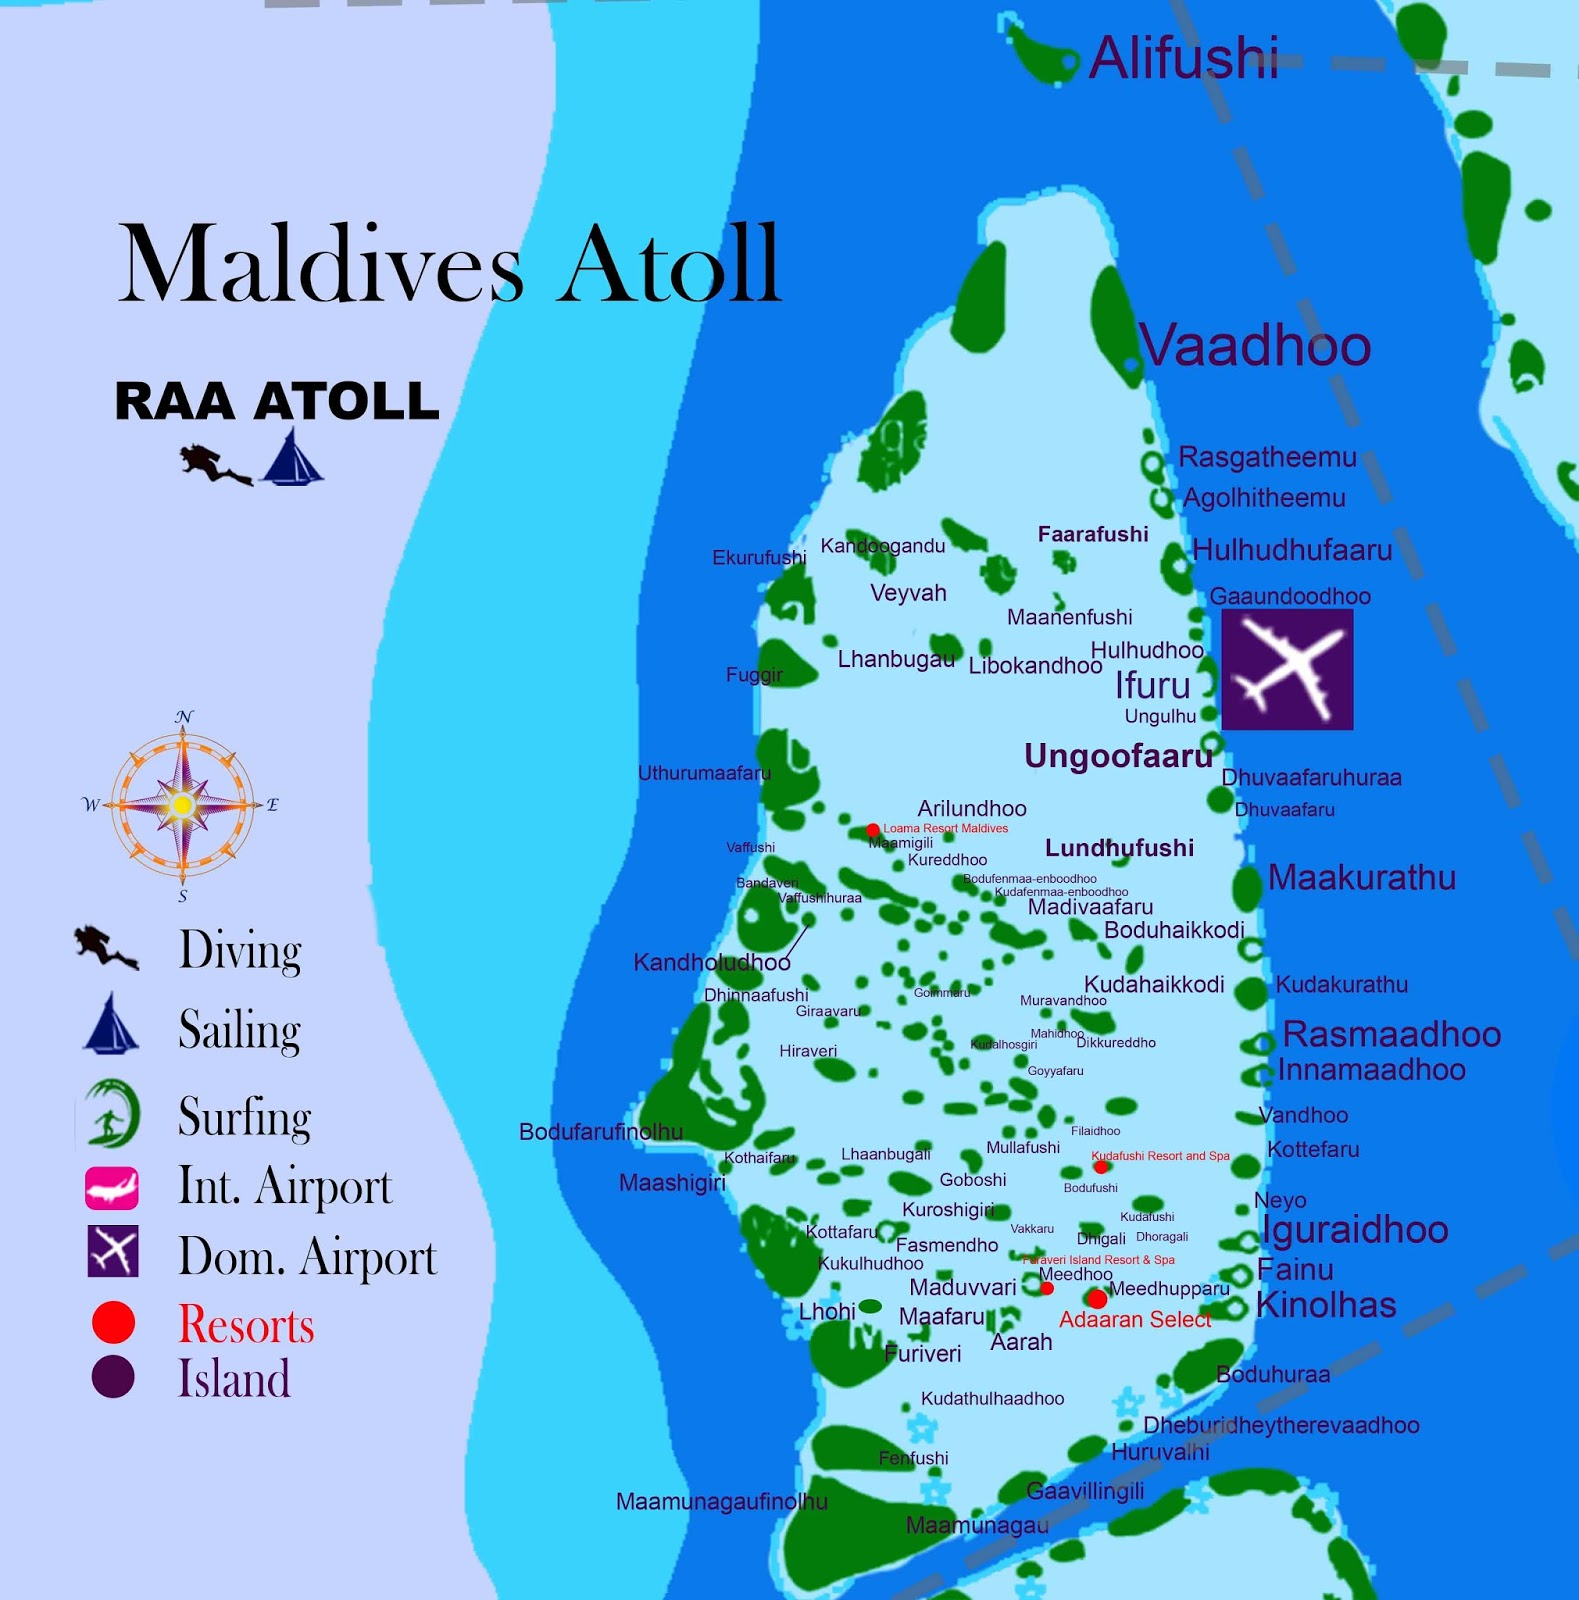 Maldives Atoll RAA ATOLL Island name resorts and hotel Travel